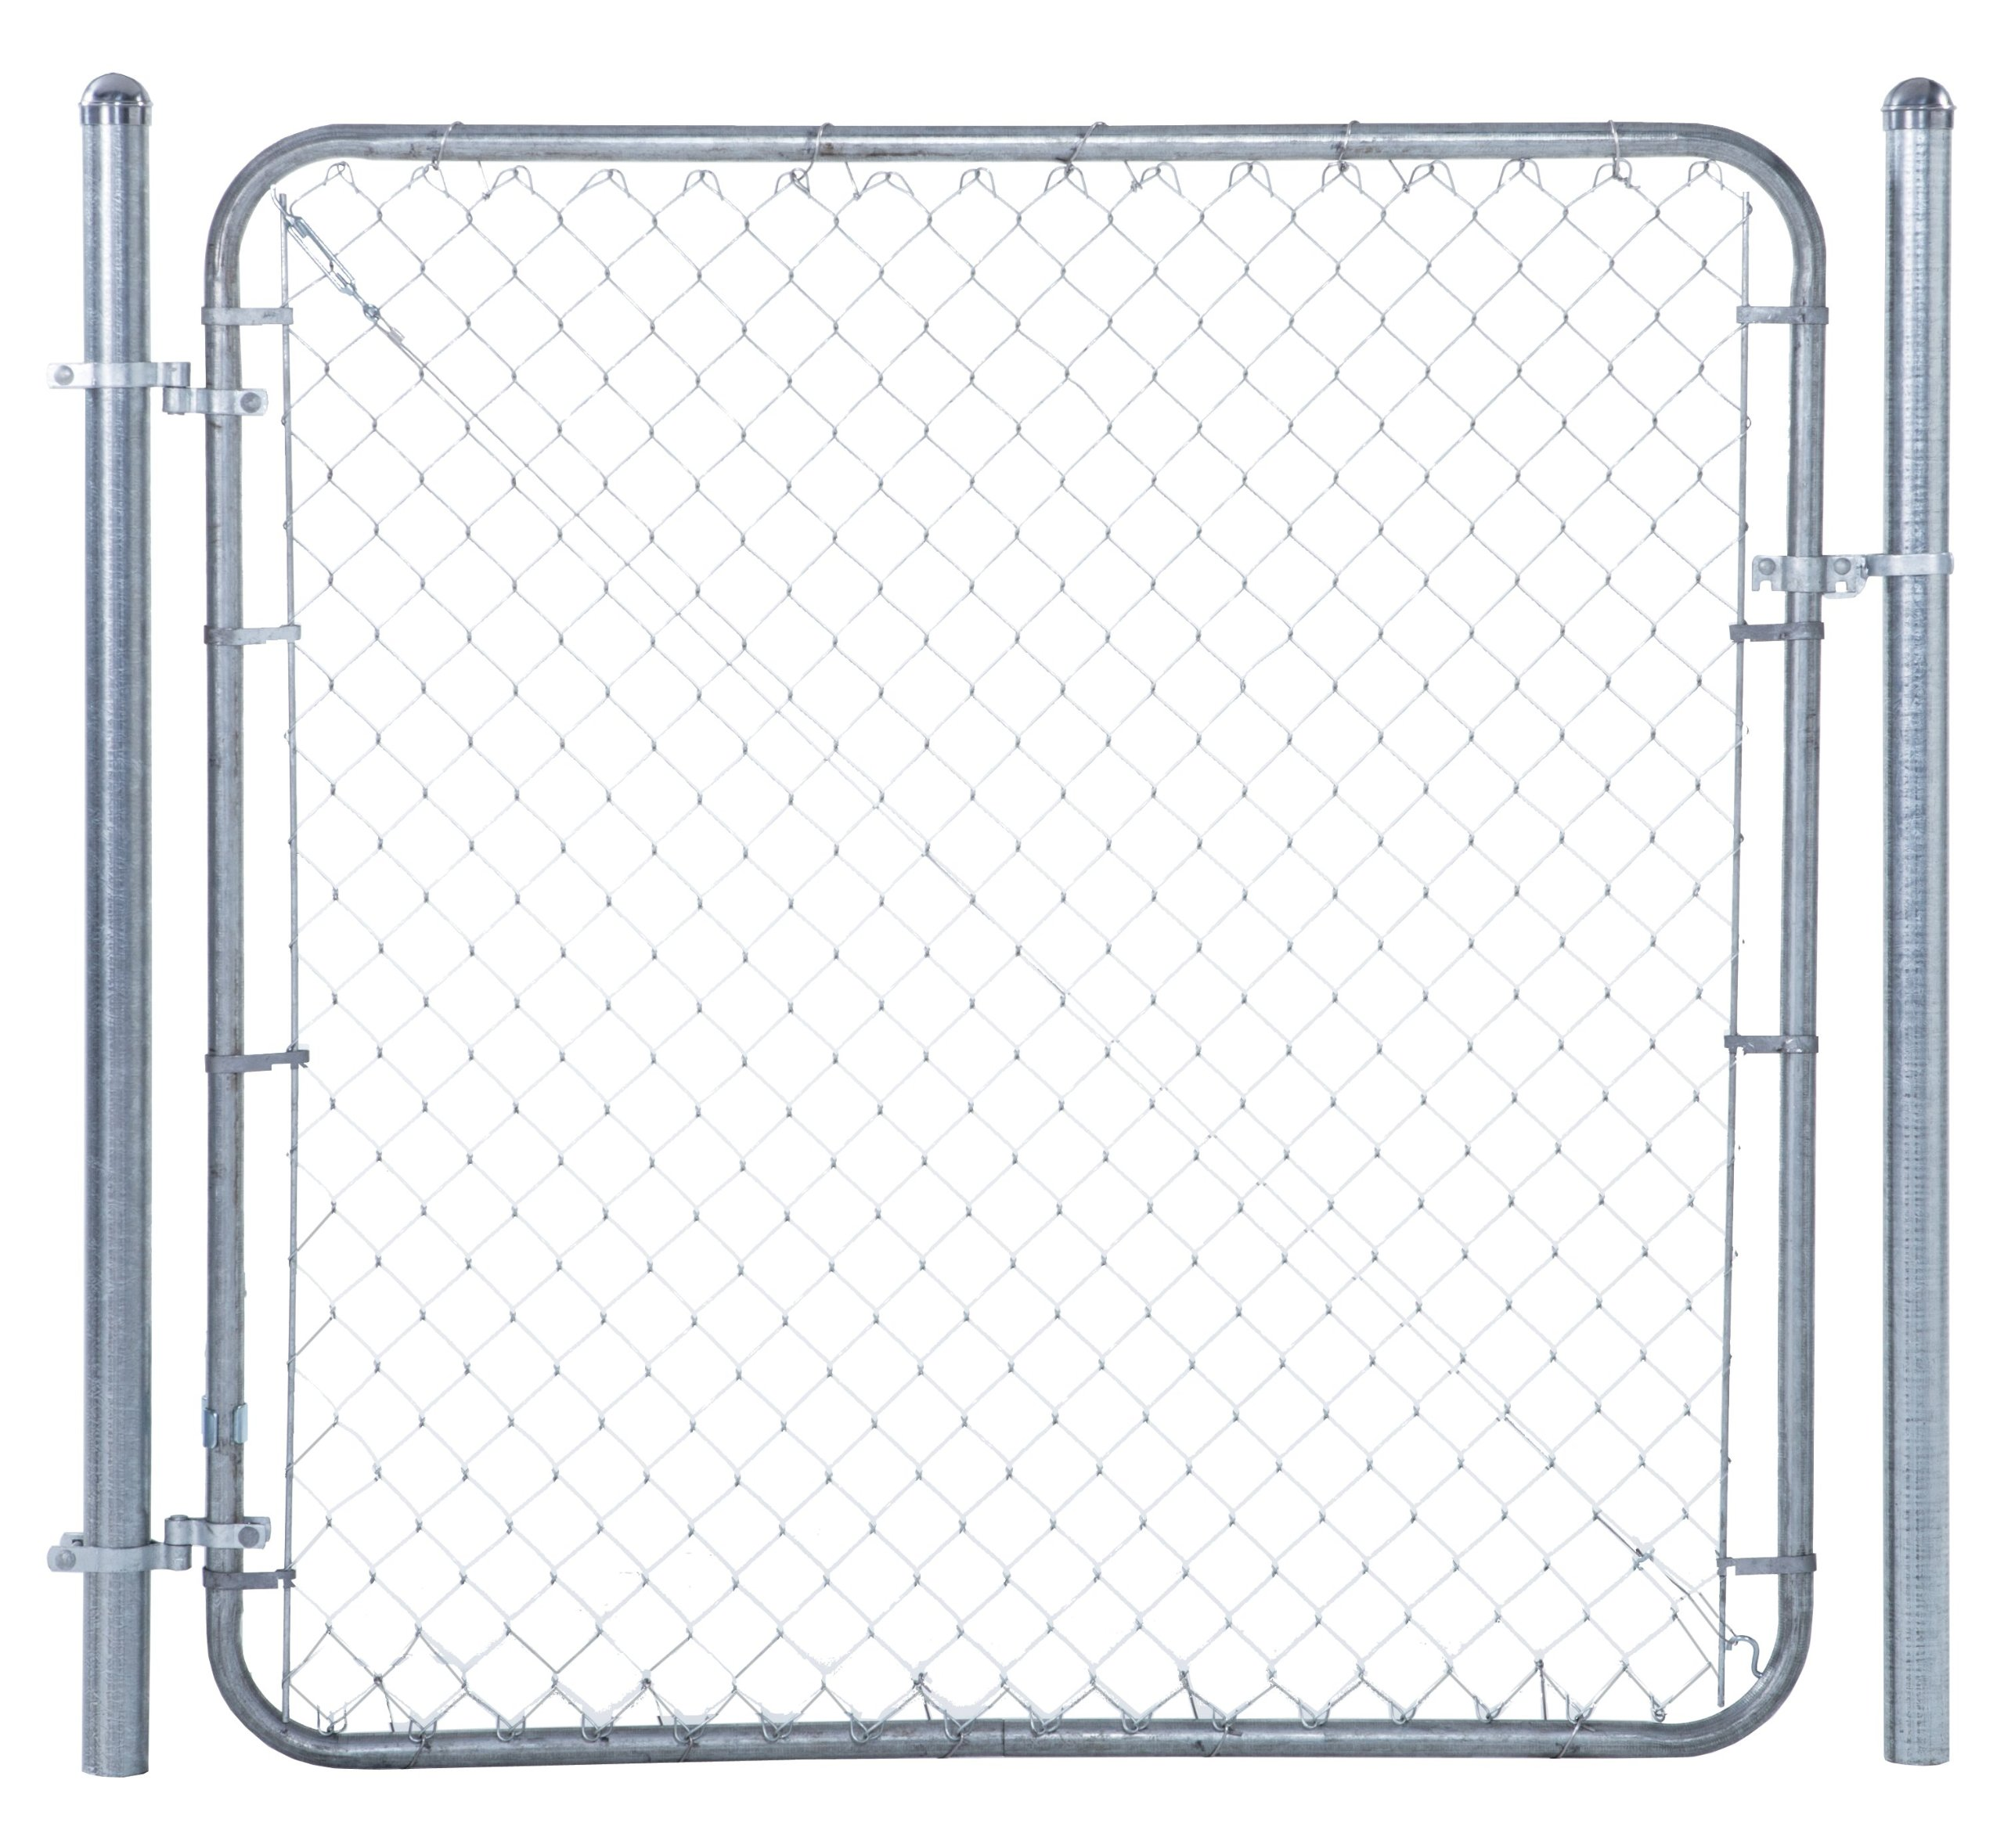 Chain Link Fence Walk-through Gate Kit - Adjust-A-Gate Chain Link Gate Building Kit - This fence gate kit is perfect for replacing existing sagging gates or building new ones. (24''-72'' wide x 4' high)